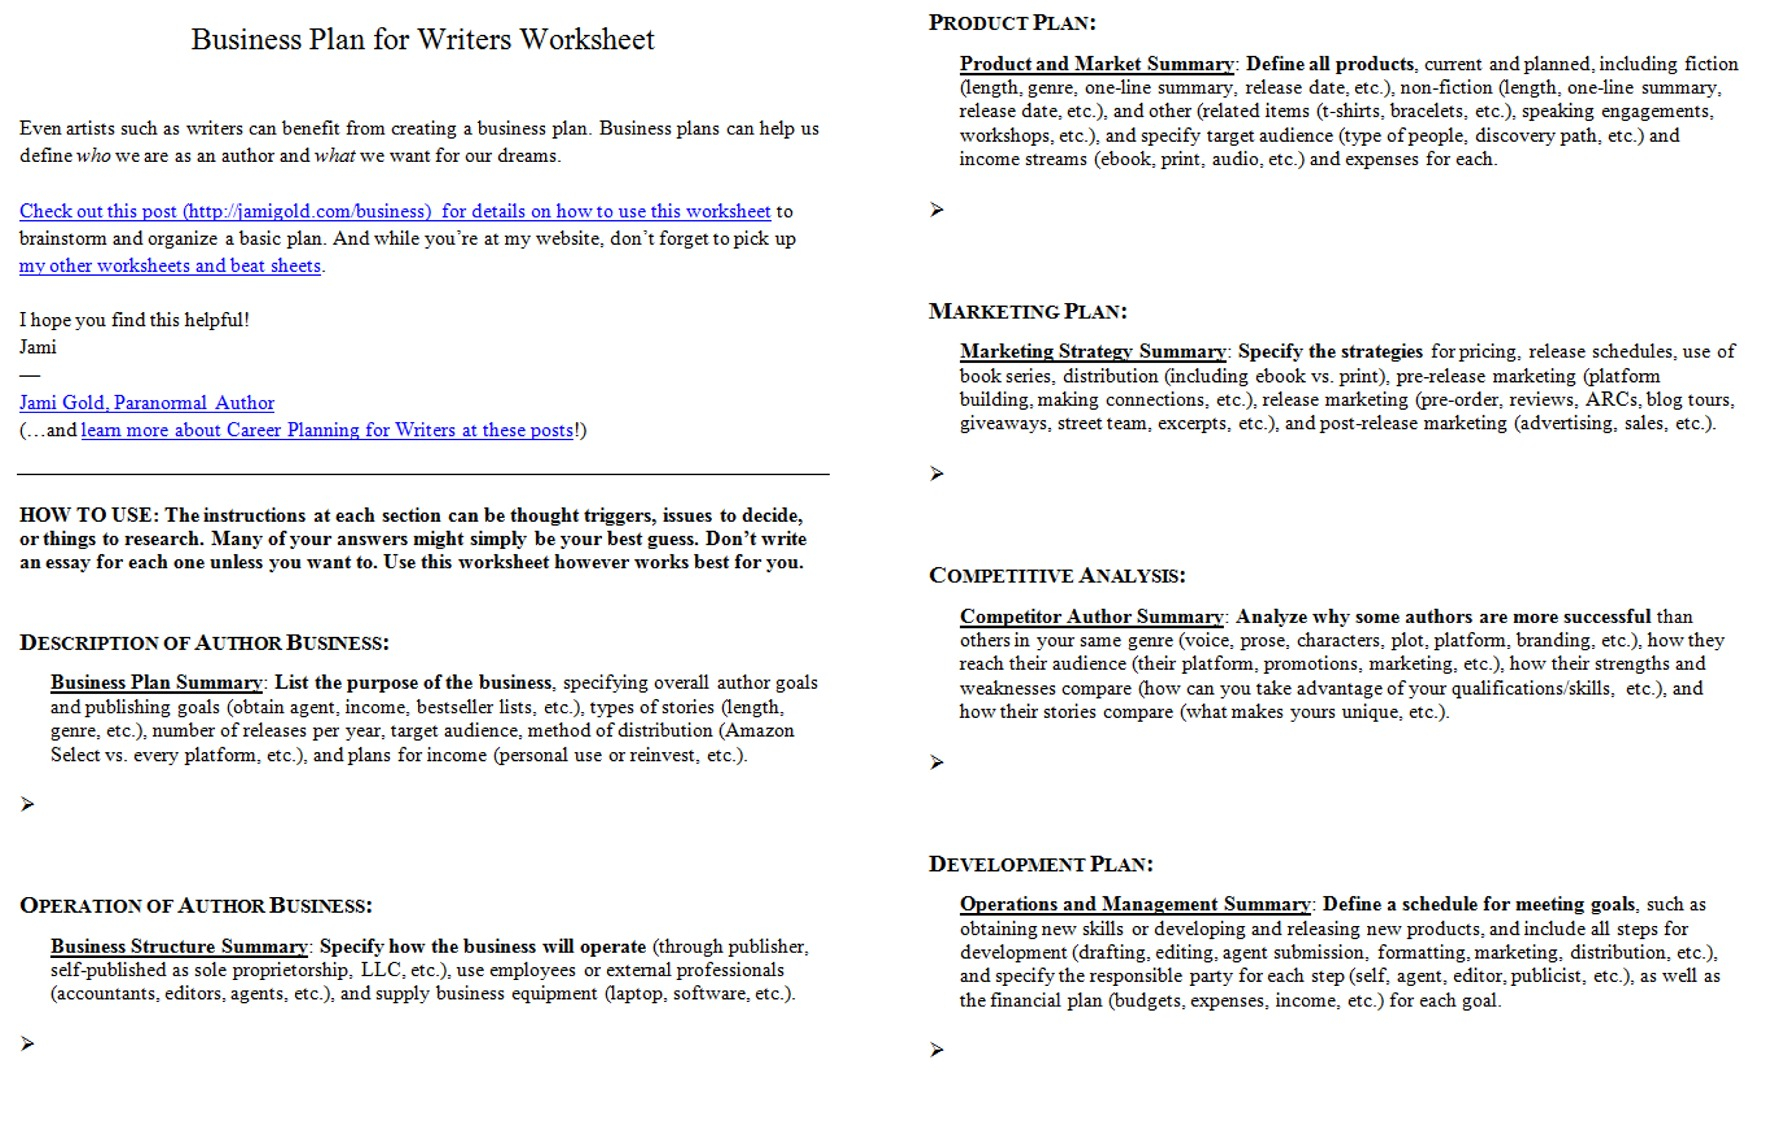 Weirdmailus  Winning Worksheets For Writers  Jami Gold Paranormal Author With Likable Screen Shot Of Both Pages Of The Business Plan For Writers Worksheet With Captivating St Patricks Day Math Worksheets Also Worksheet Atomic Structure Answers In Addition Imaginary Numbers Worksheet And French Worksheets As Well As Standard Deviation Worksheet Additionally Mitosis Versus Meiosis Worksheet From Jamigoldcom With Weirdmailus  Likable Worksheets For Writers  Jami Gold Paranormal Author With Captivating Screen Shot Of Both Pages Of The Business Plan For Writers Worksheet And Winning St Patricks Day Math Worksheets Also Worksheet Atomic Structure Answers In Addition Imaginary Numbers Worksheet From Jamigoldcom